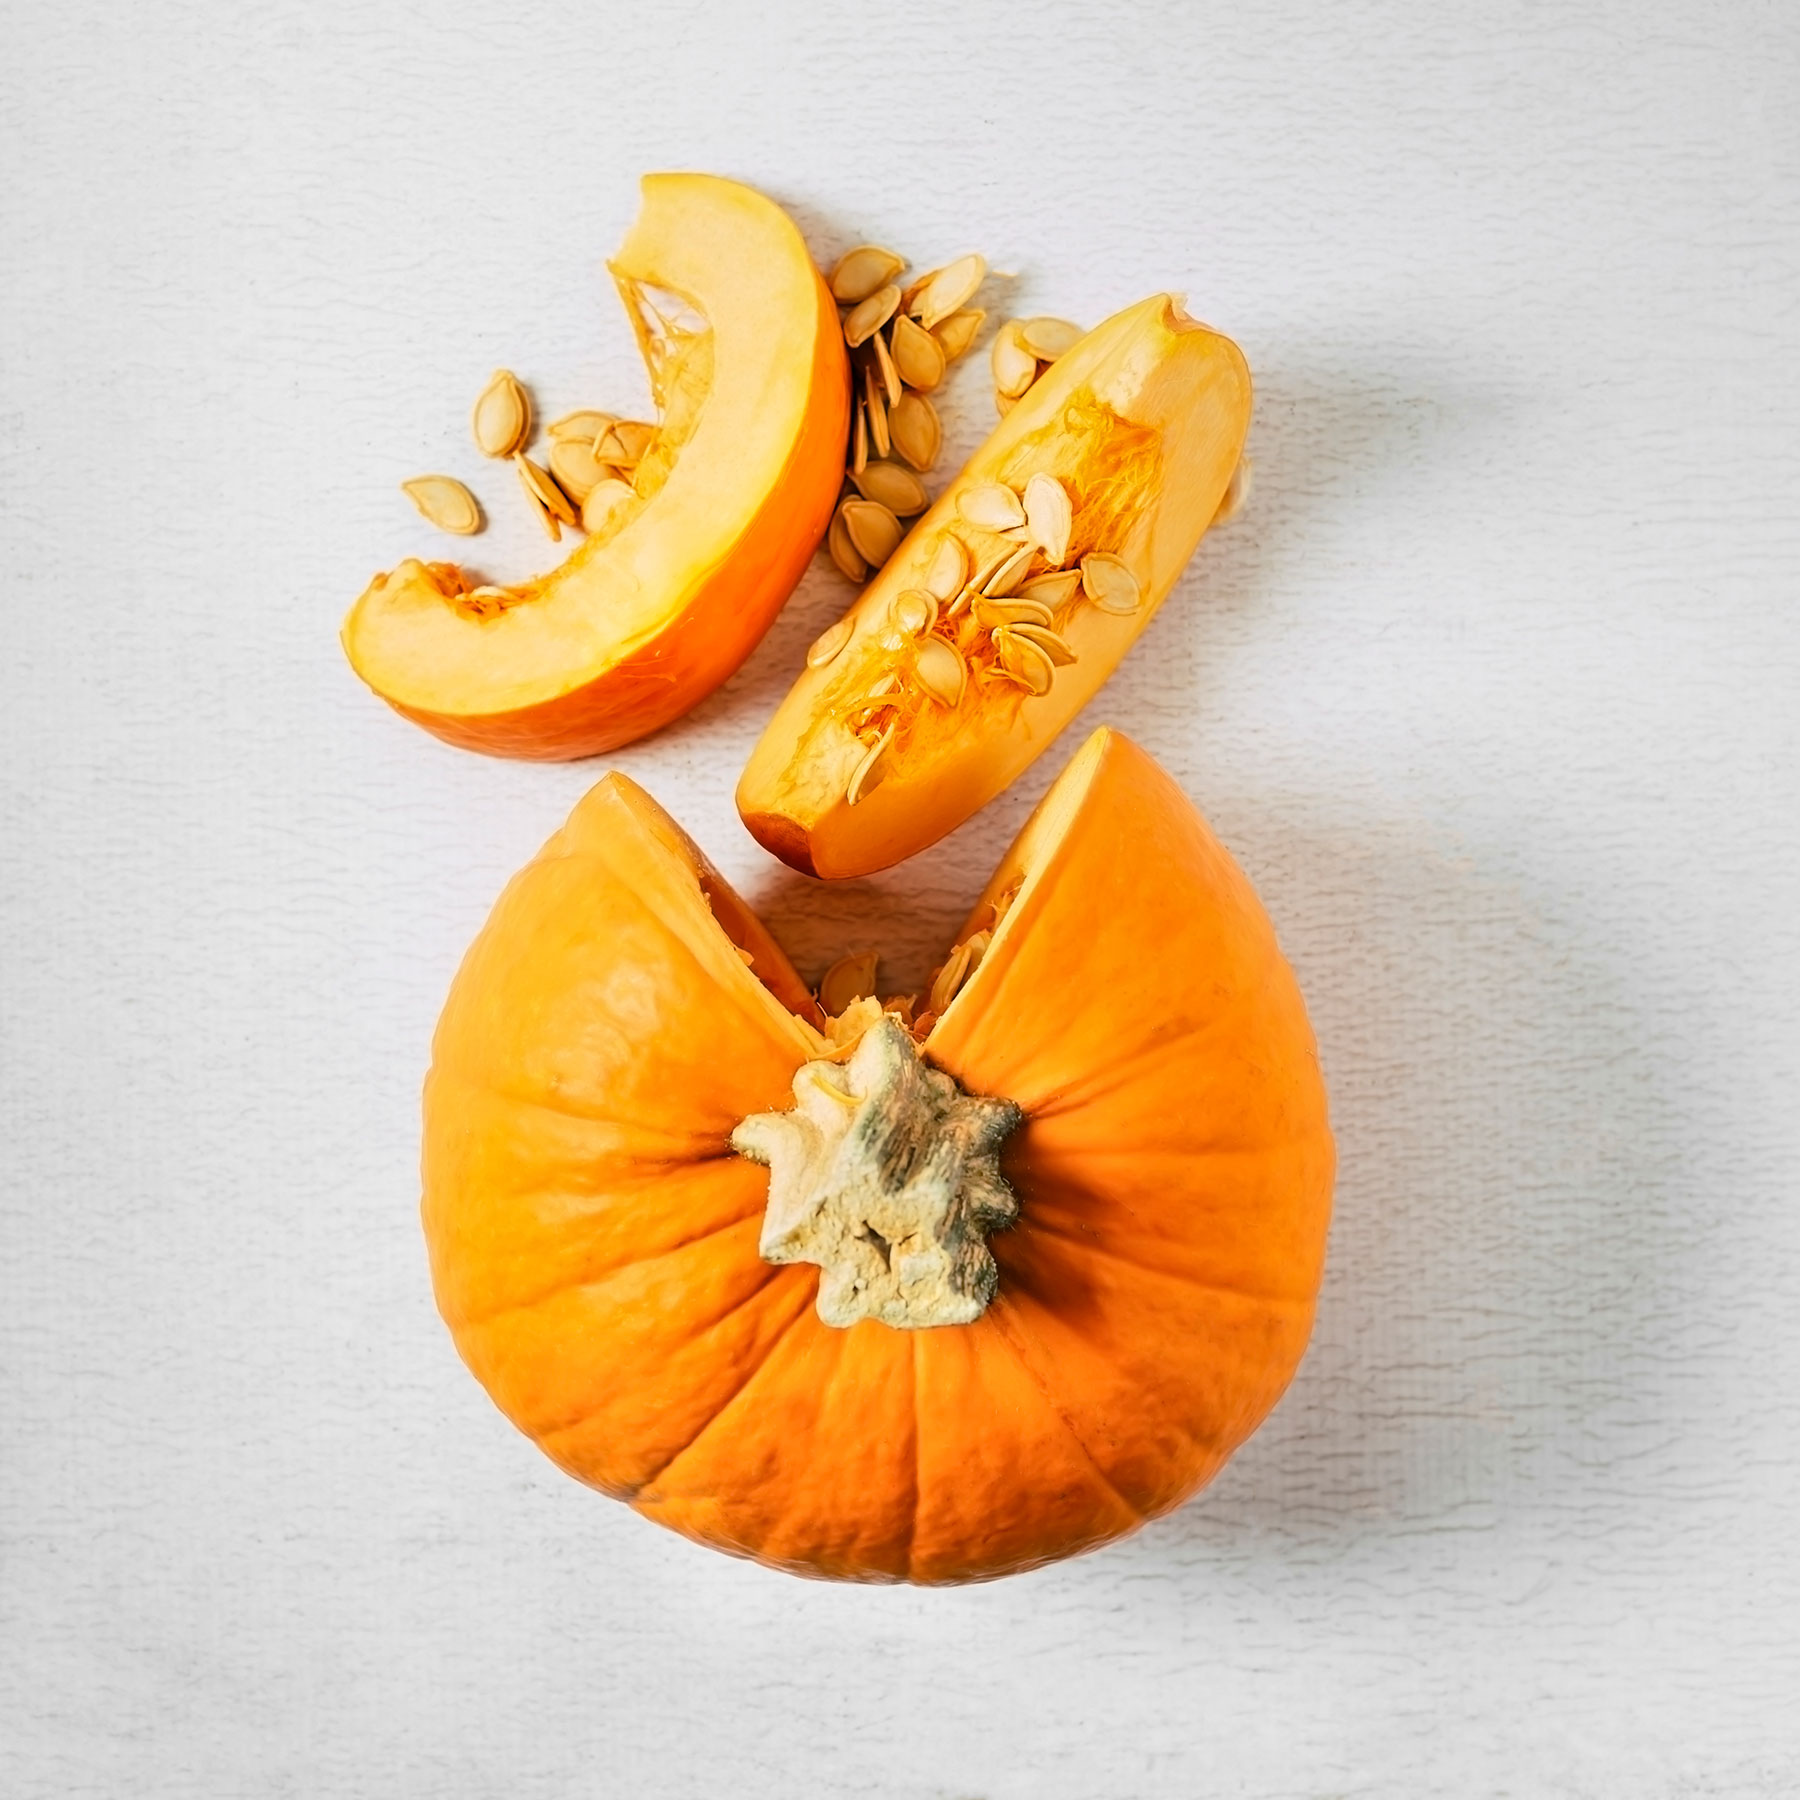 Superfoods to Know About: Pumpkin